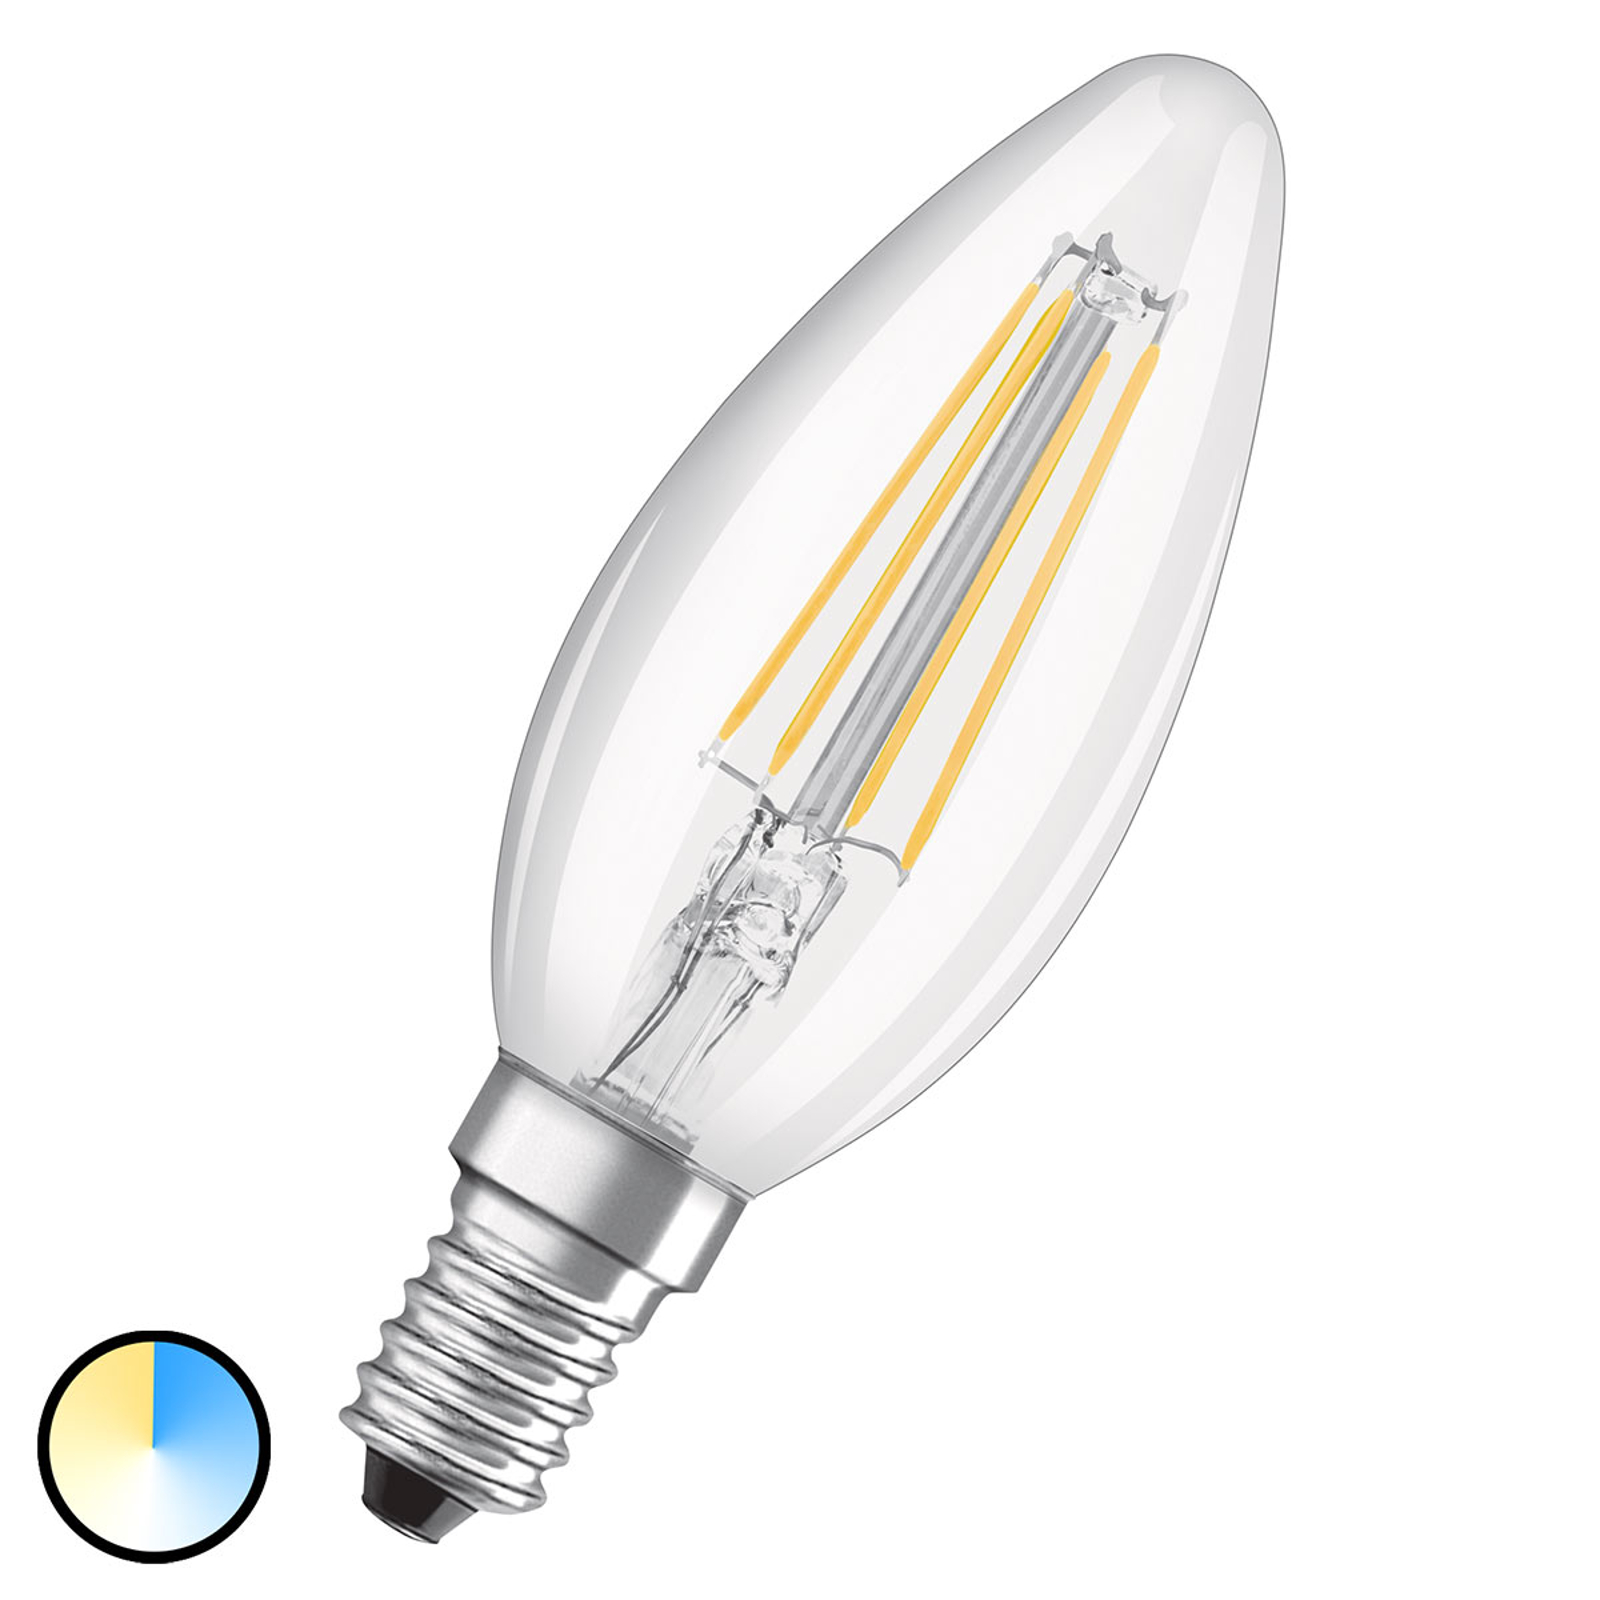 OSRAM LED lampa CLB E14 5W Star+ Relax&Active | Lamp24.se